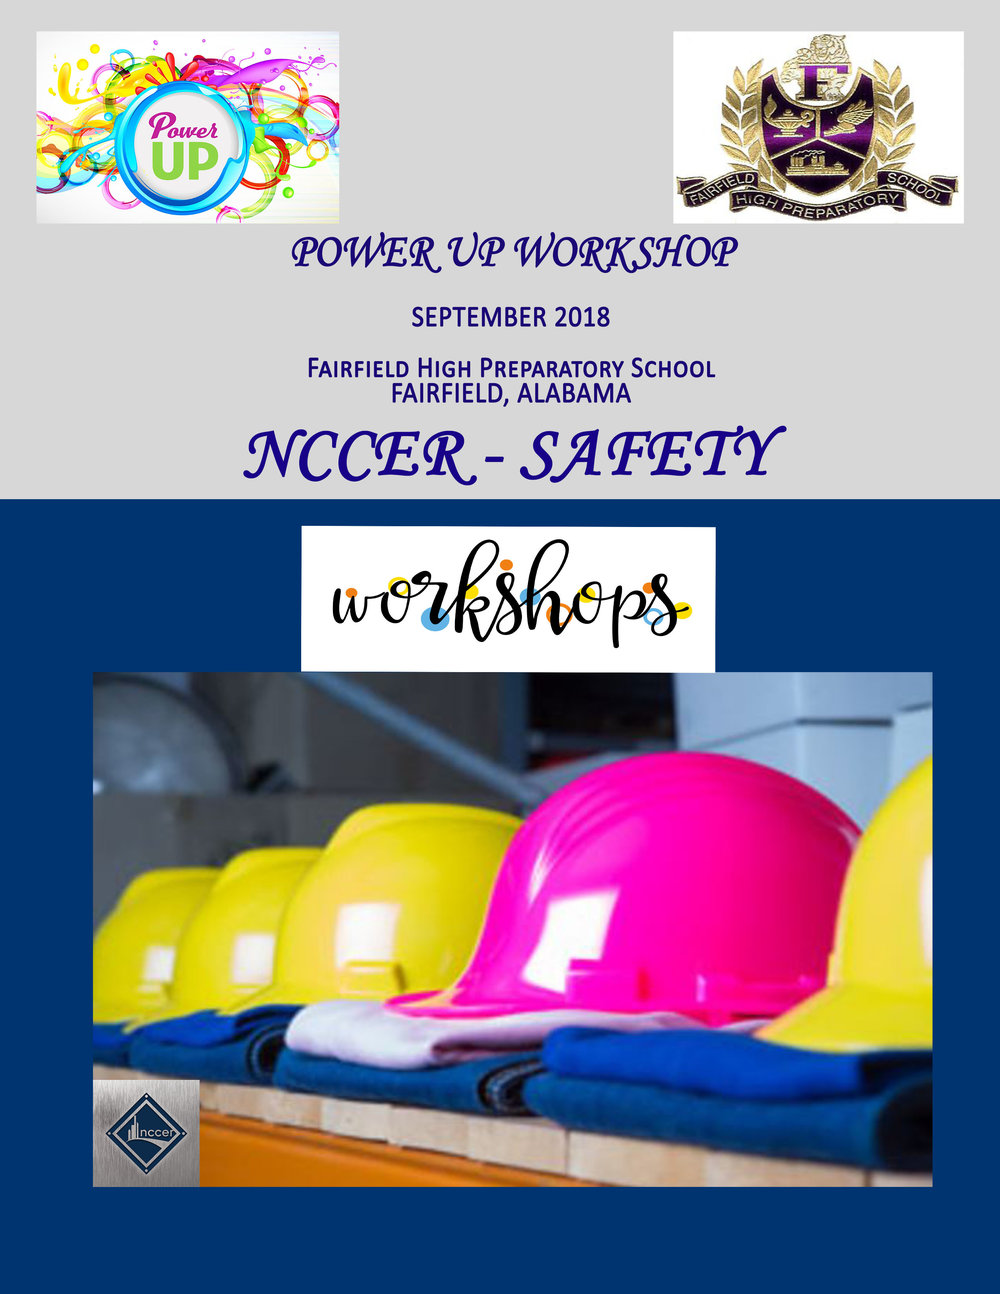 Power UP Workshop NCCER SAFETY Fairfield AL 9.2018 flyer.jpg